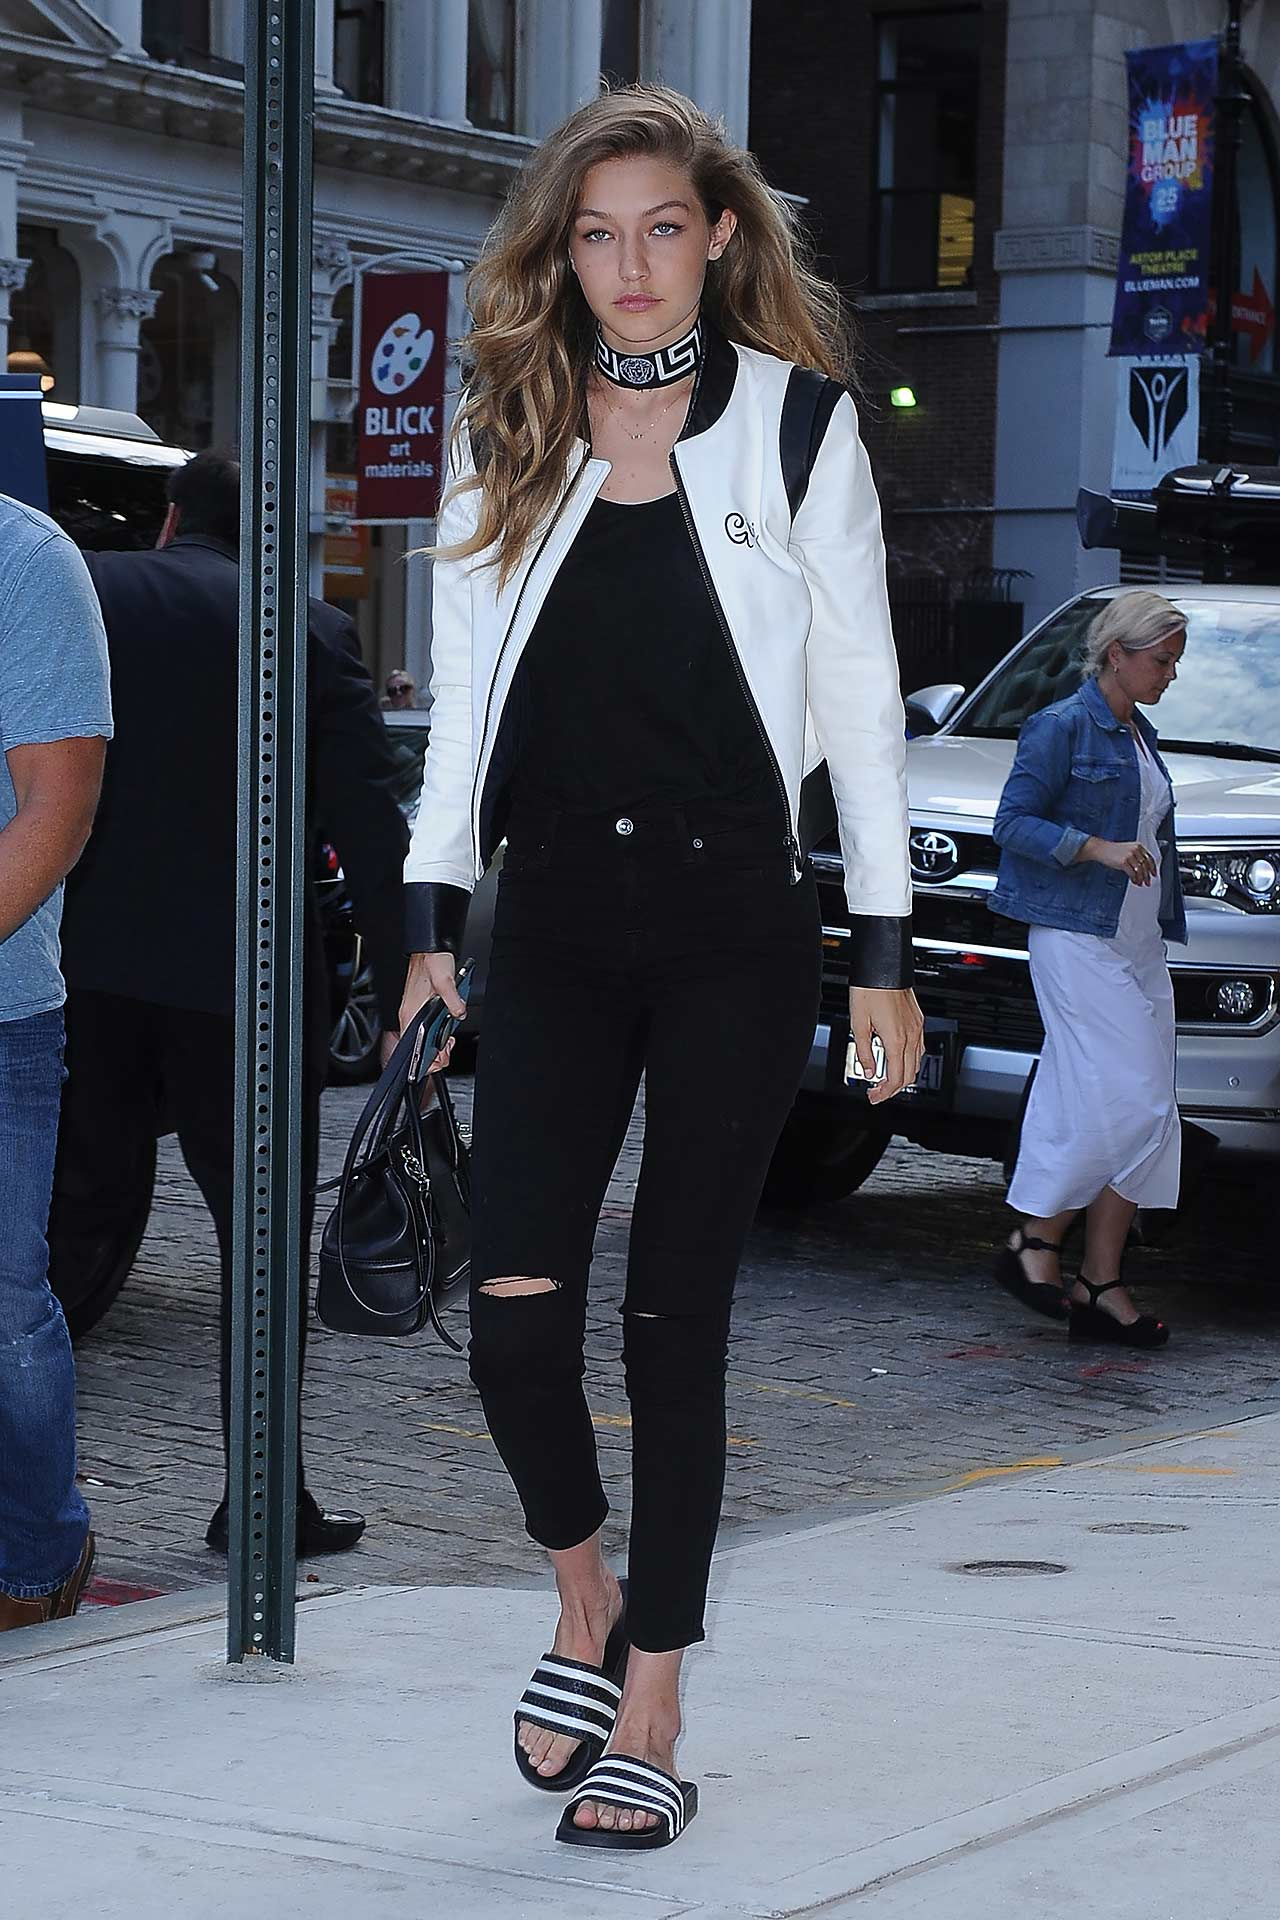 Gigi Hadid Wears 7 For All Mankind b(air) Skinny Jeans | The Jeans ...